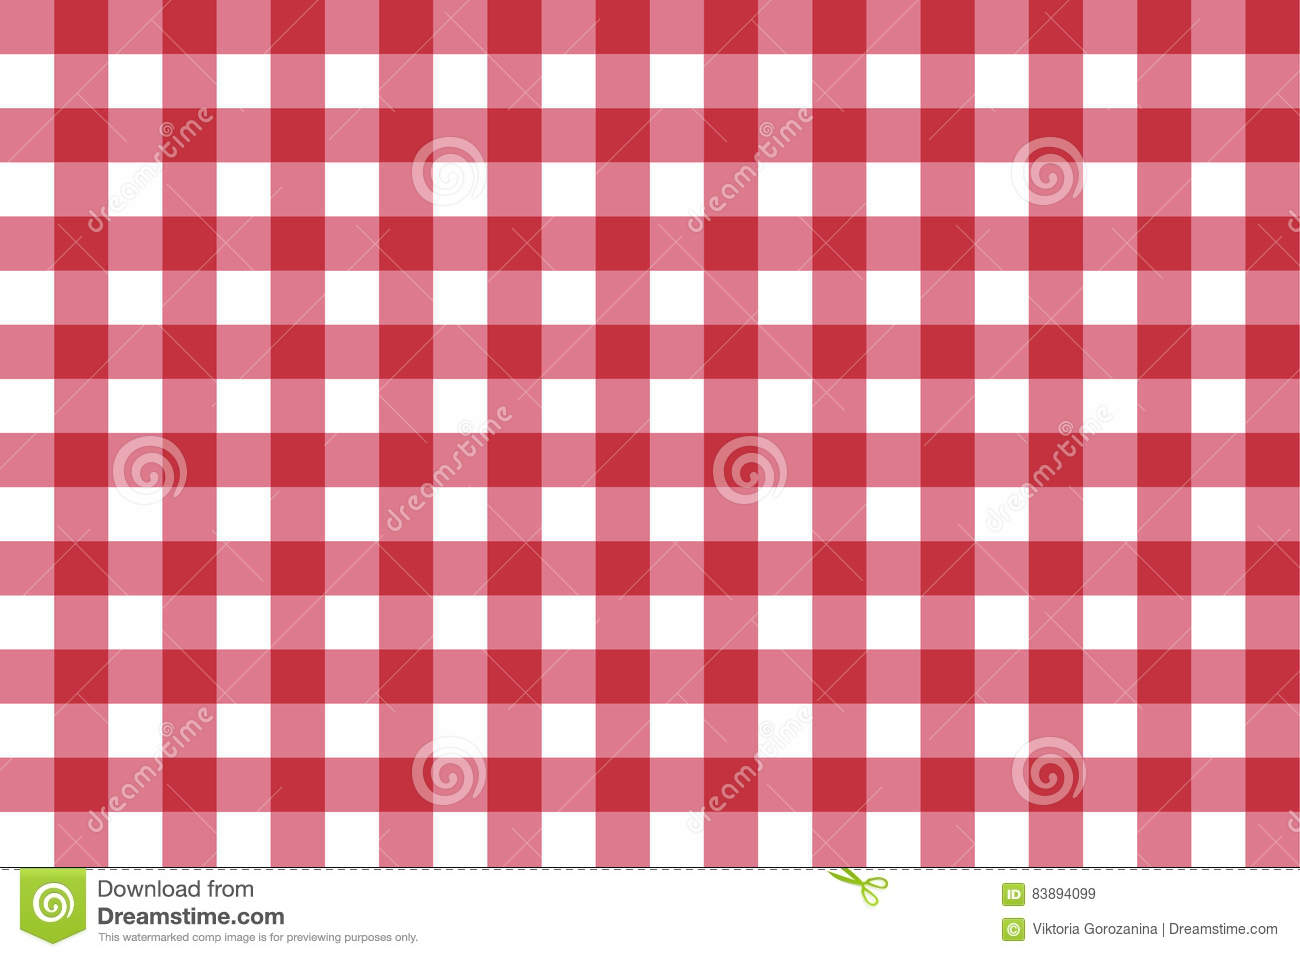 Classic Red Checkerboard Chequer Seamless Pattern For Textile Paper Print Vector Illustration